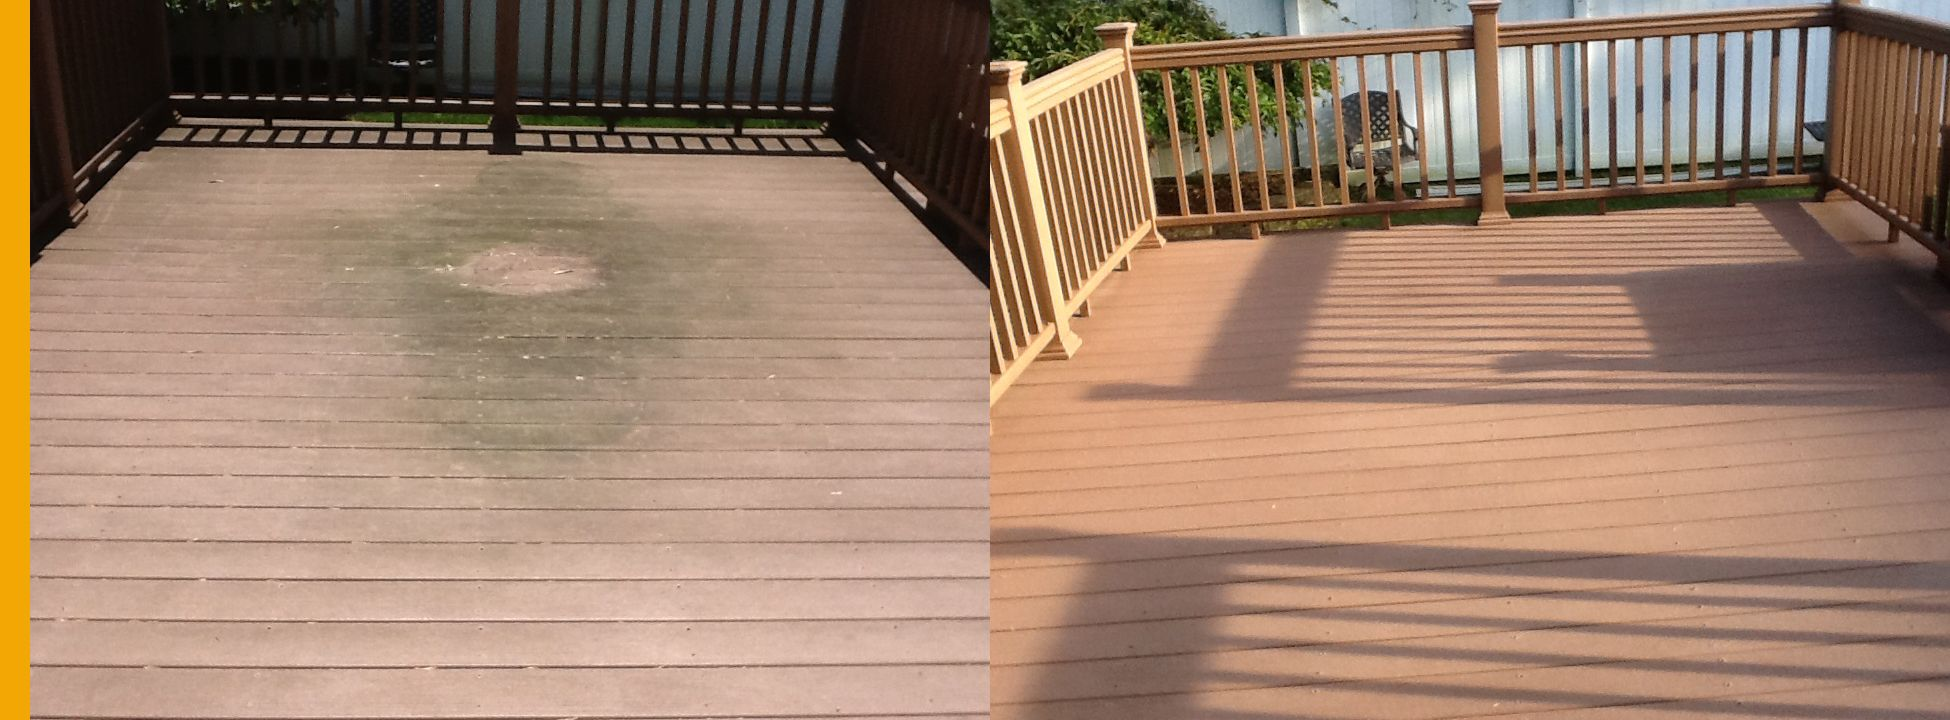 Deck cleaning before and after deck cleaning deck